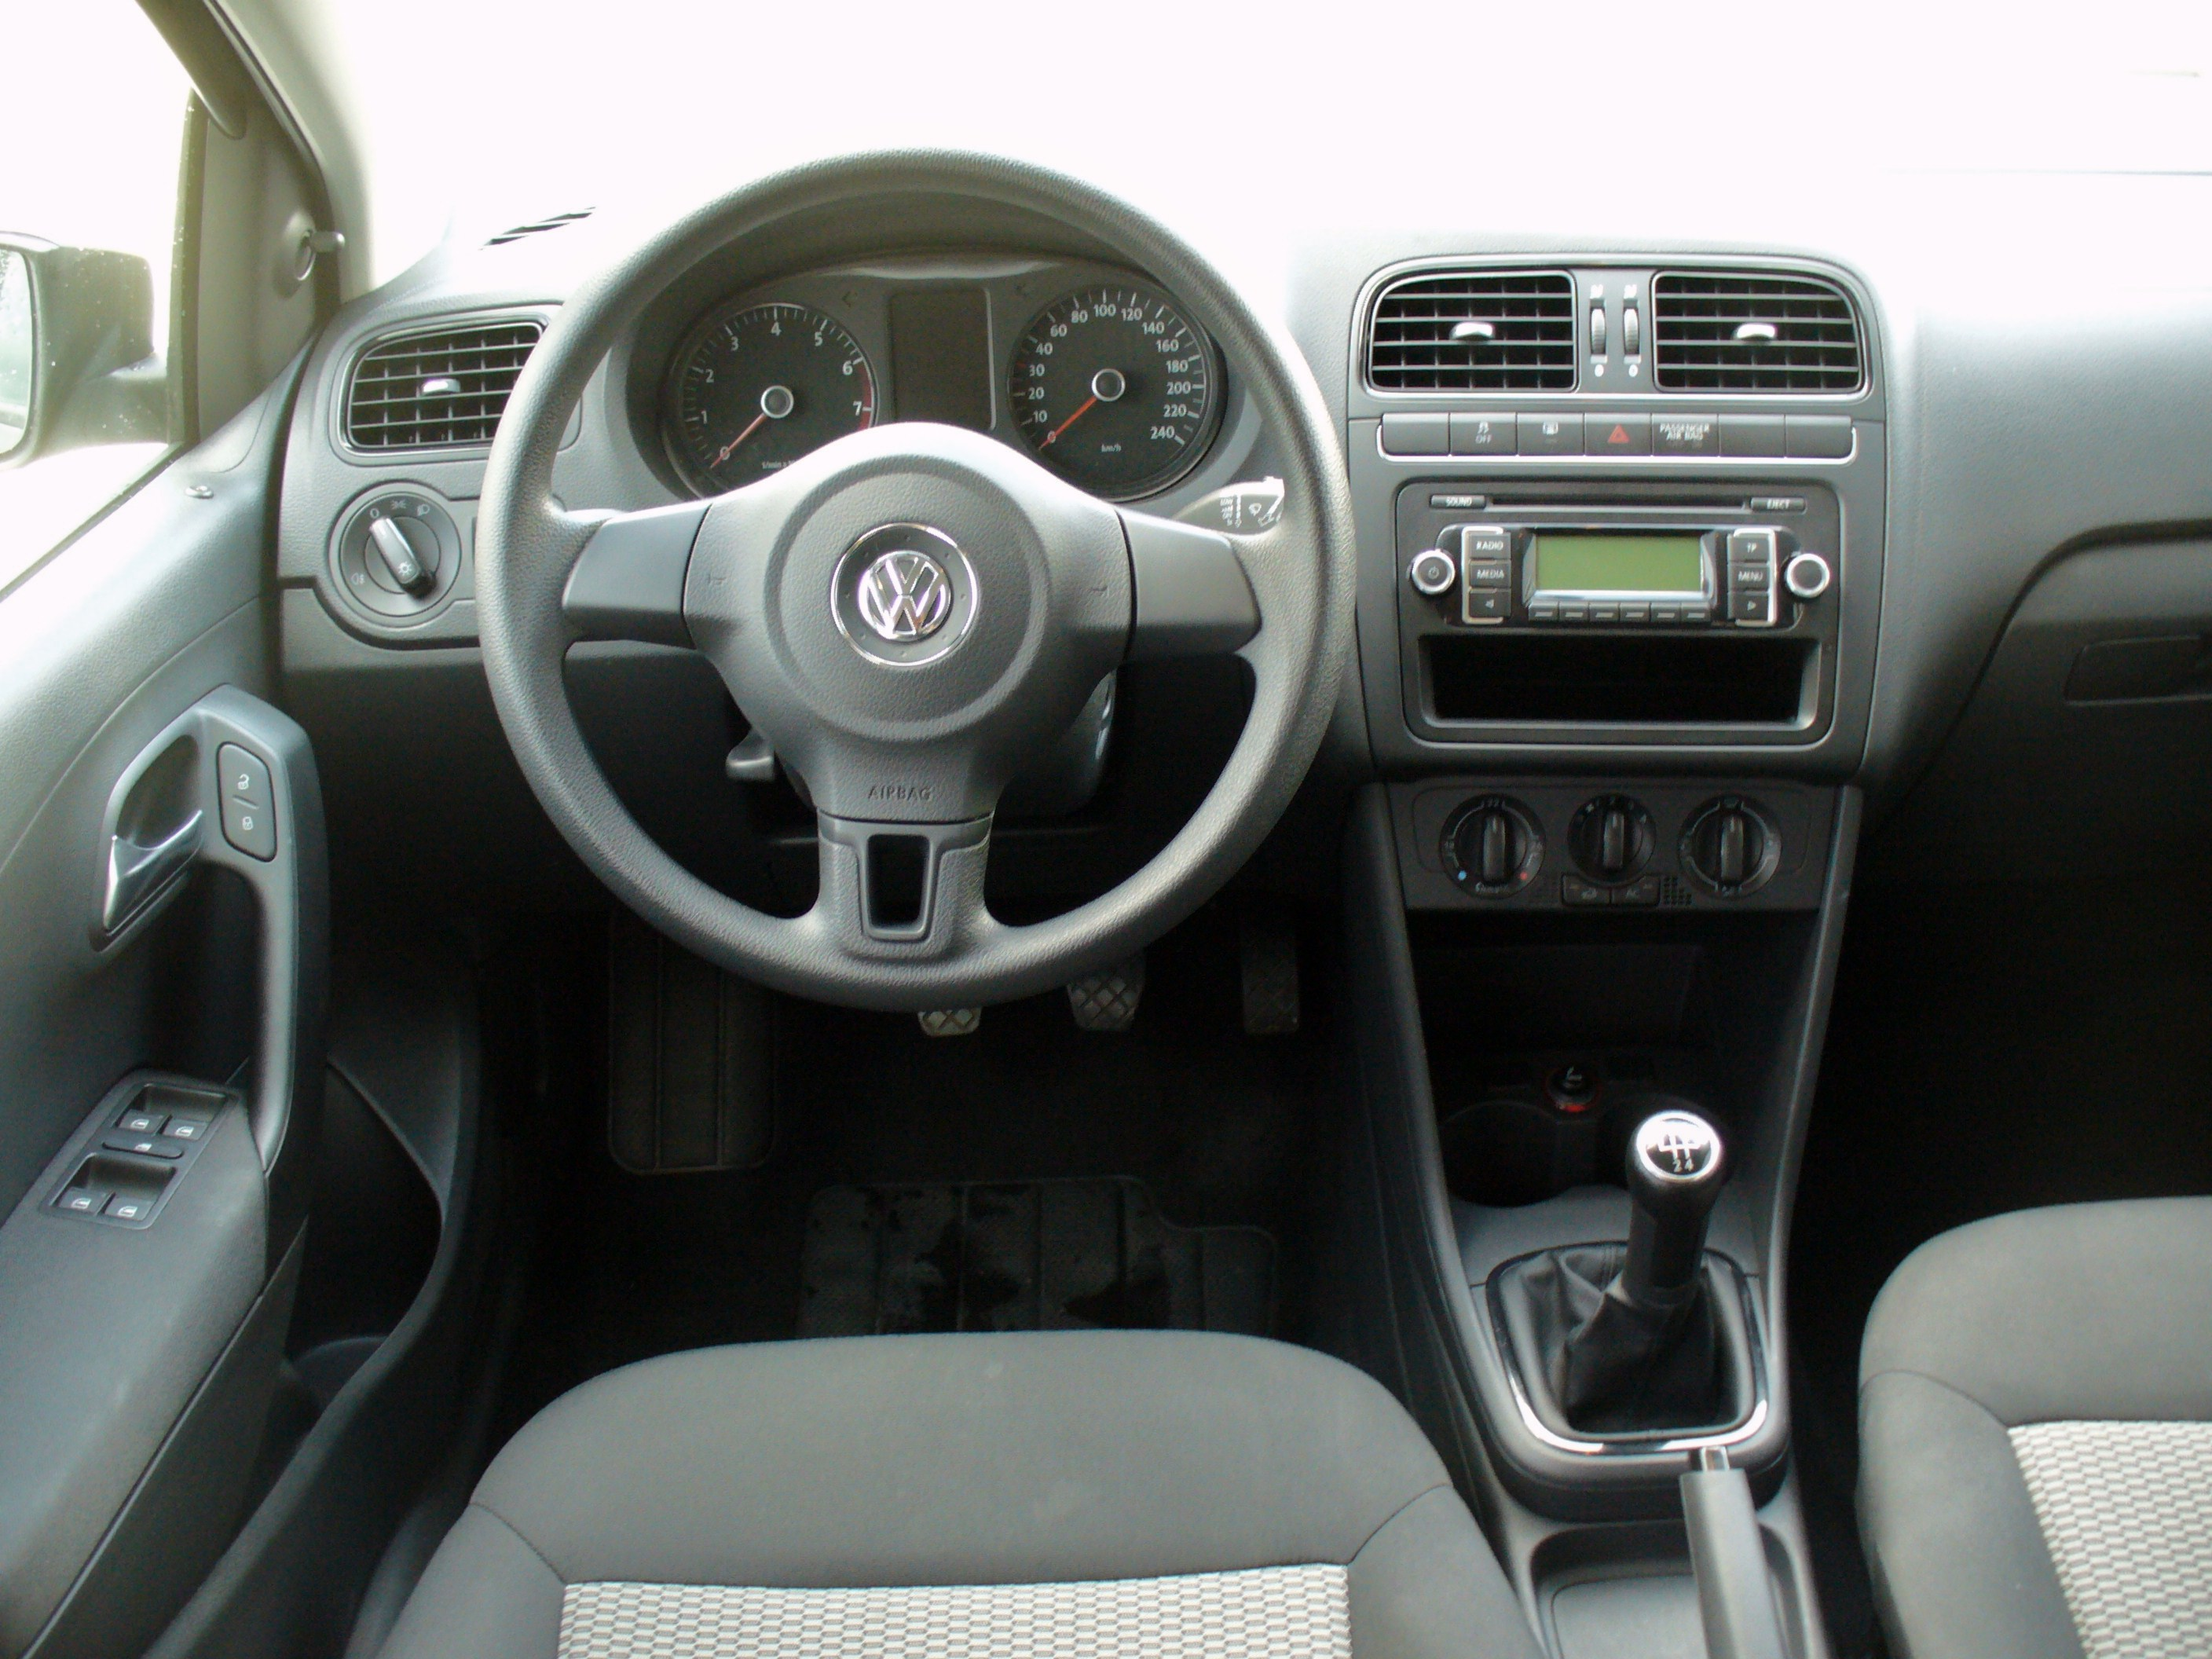 file vw polo v 1 2 trendline interieur jpg wikimedia commons On polo 7 interieur trendline